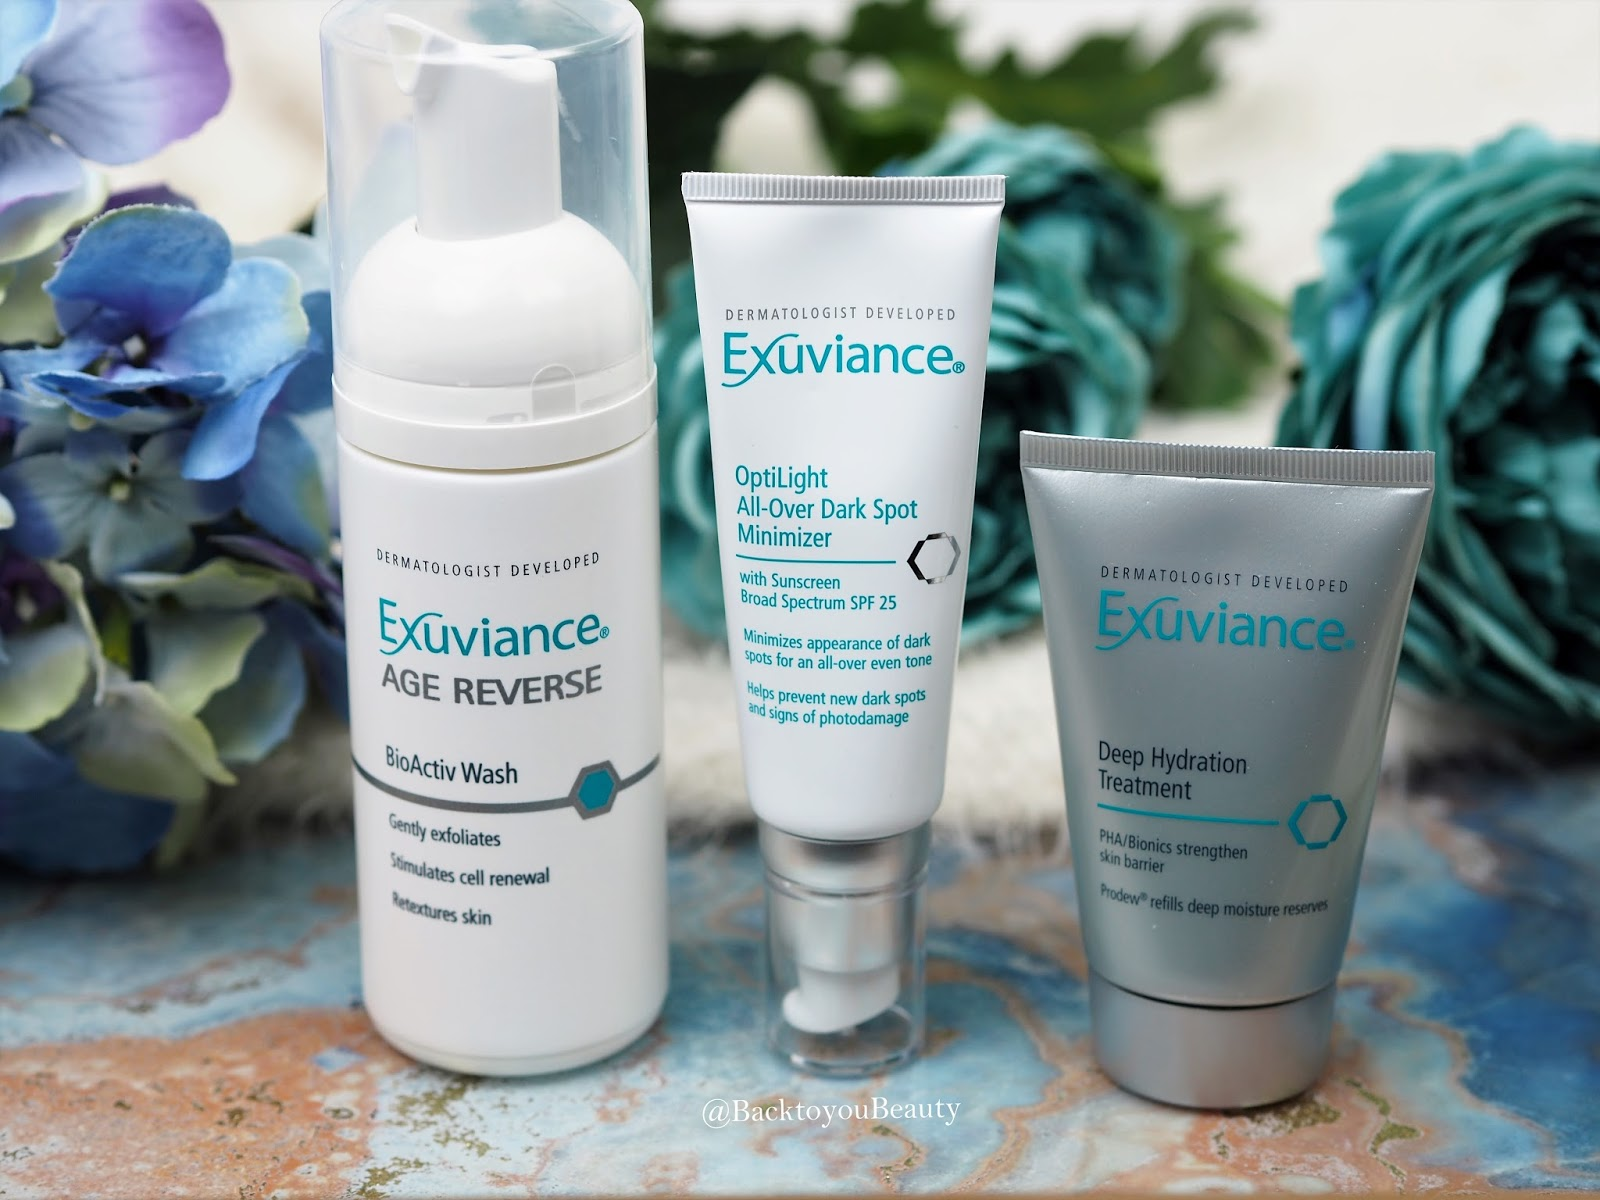 Dermatologist developed skincare from Exuviance